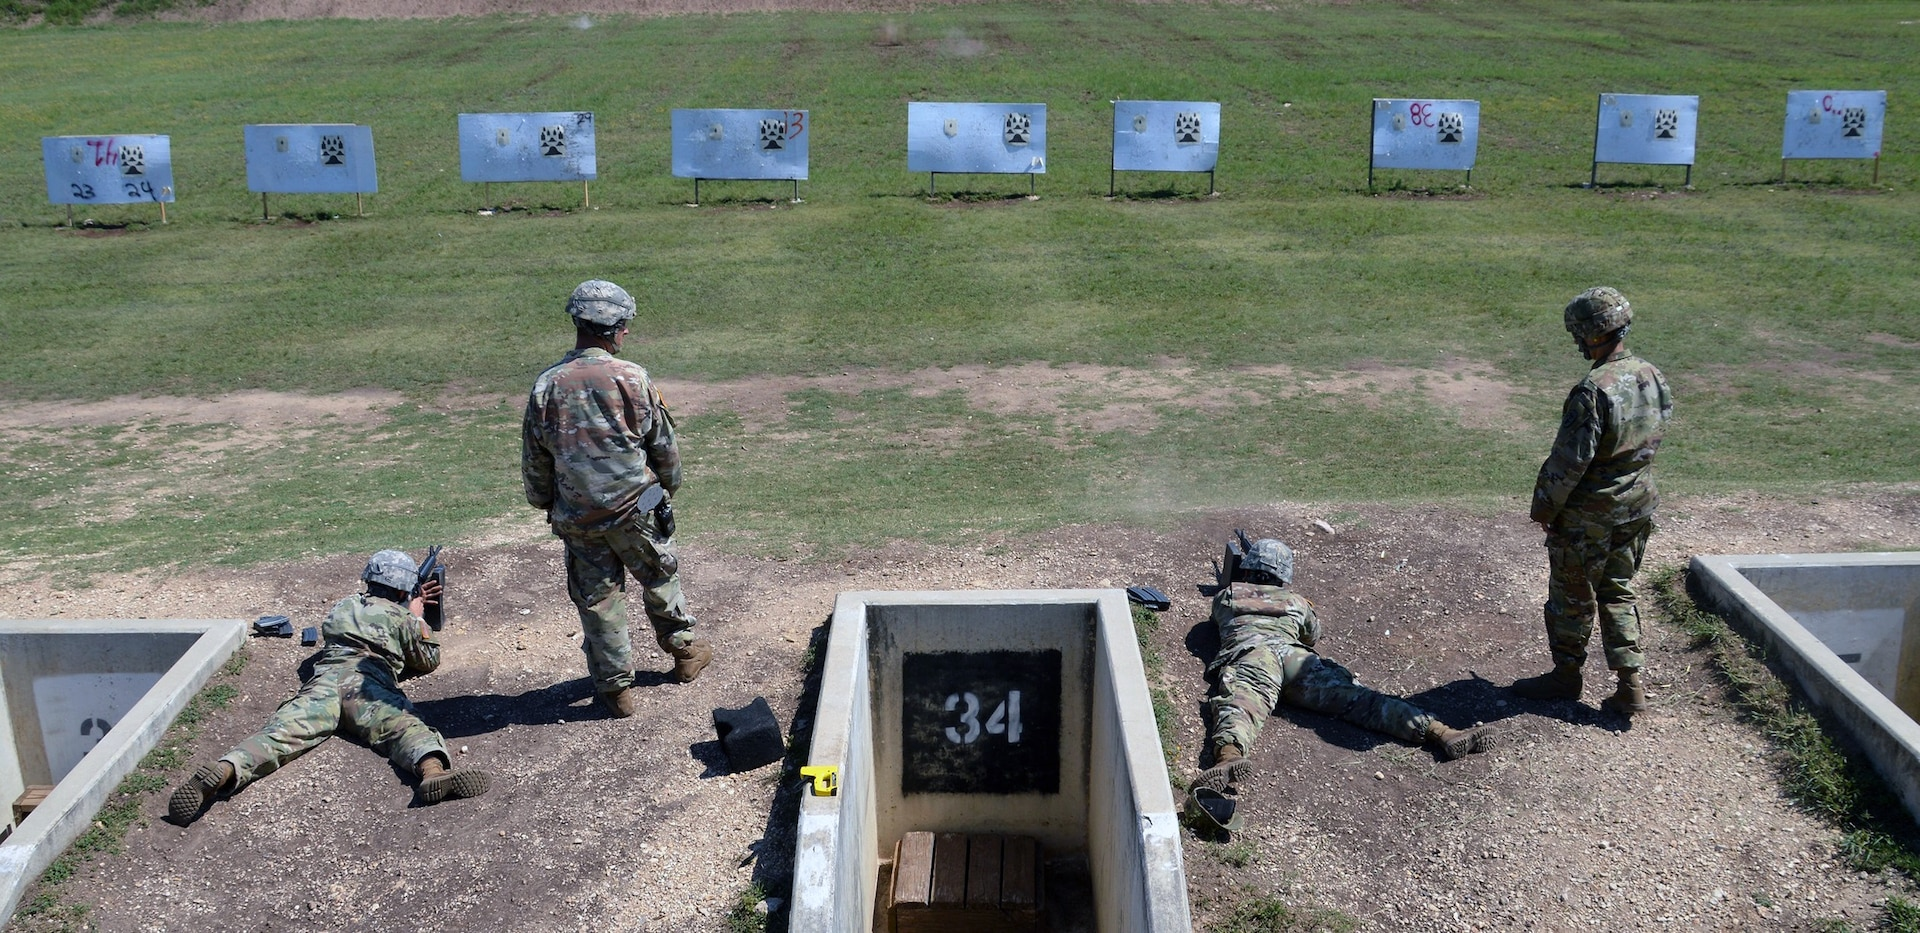 Soldiers participate in an M-16 qualification during the Brooke Army Medical Center Best Medic Competition at Joint Base San Antonio-Camp Bullis June 13. The competitors were tested on both warrior and medic skills during the competition.